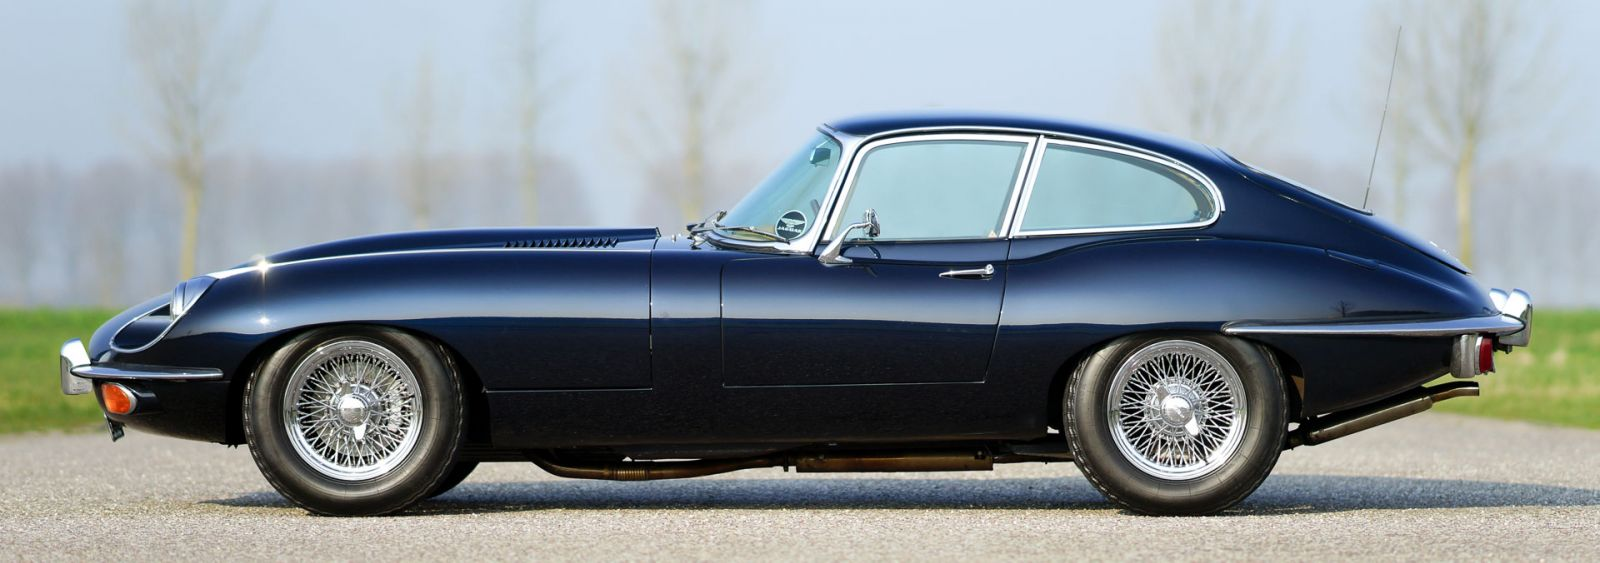 Jaguar Etype 42 Litre FHC 1969  Welcome to ClassiCarGarage